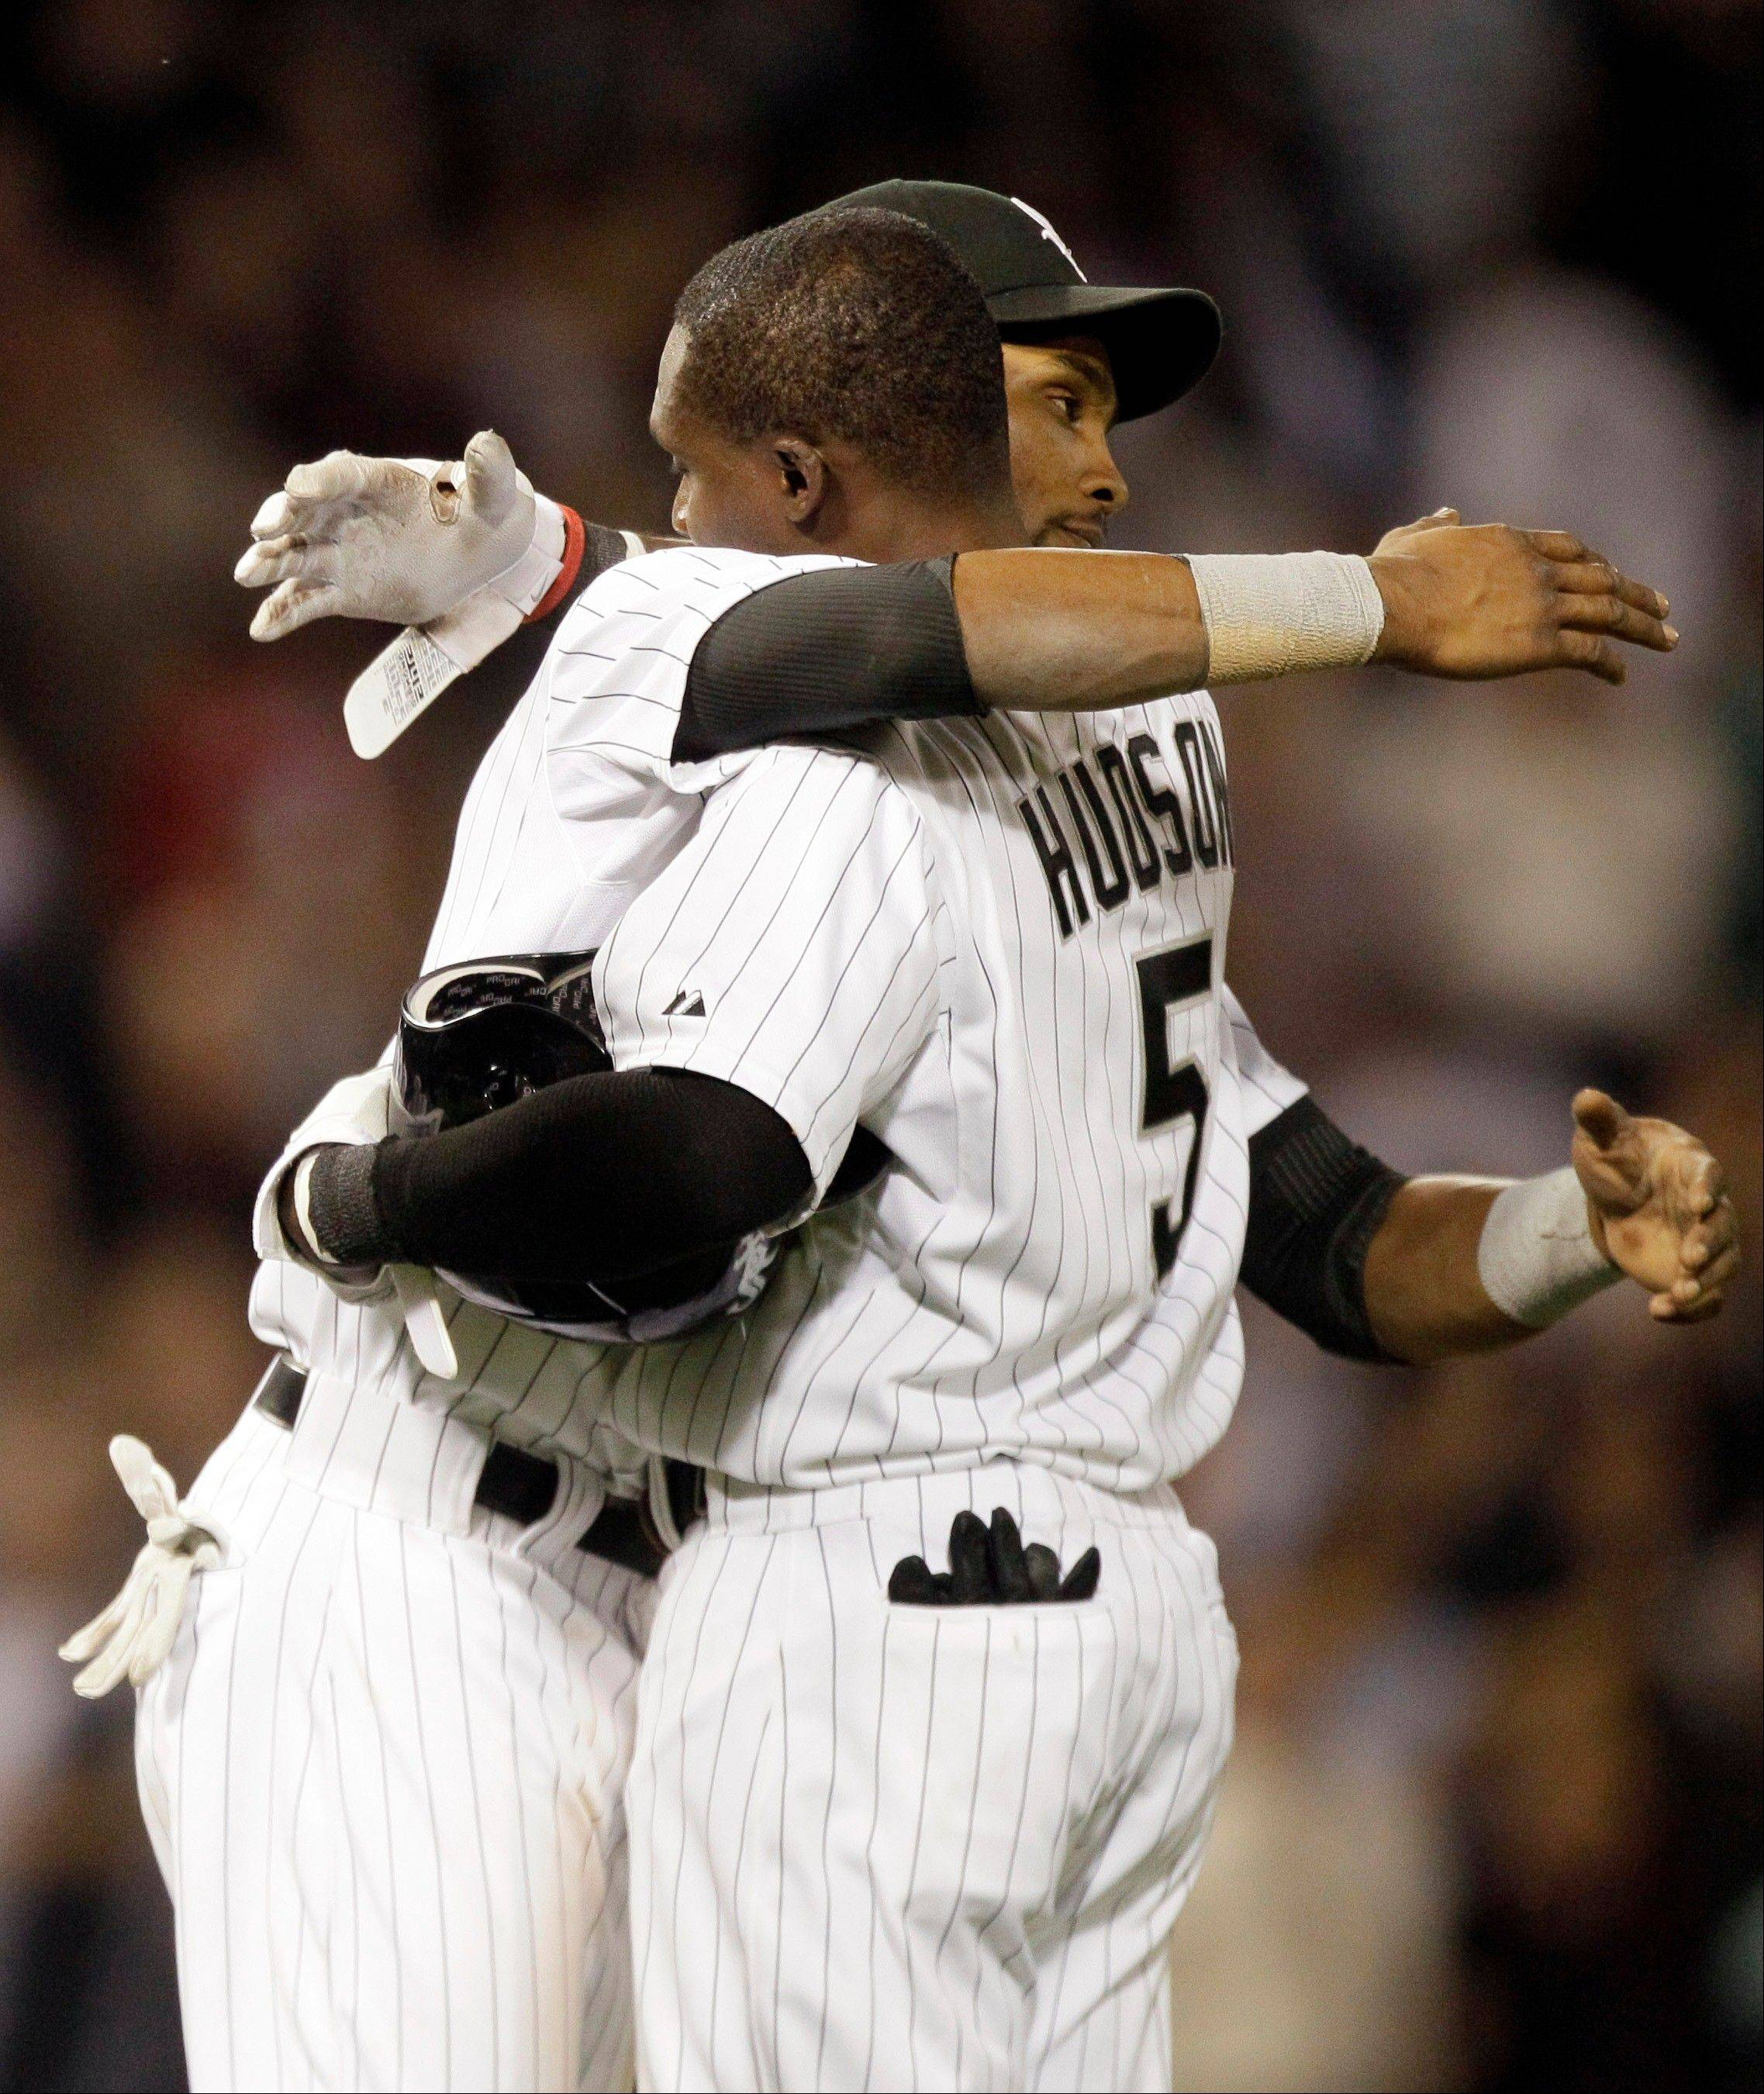 The White Sox' Orlando Hudson gets a hug from Alexei Ramirez after his game-winning single in the night inning against the Toronto Blue Jays on Thursday night.